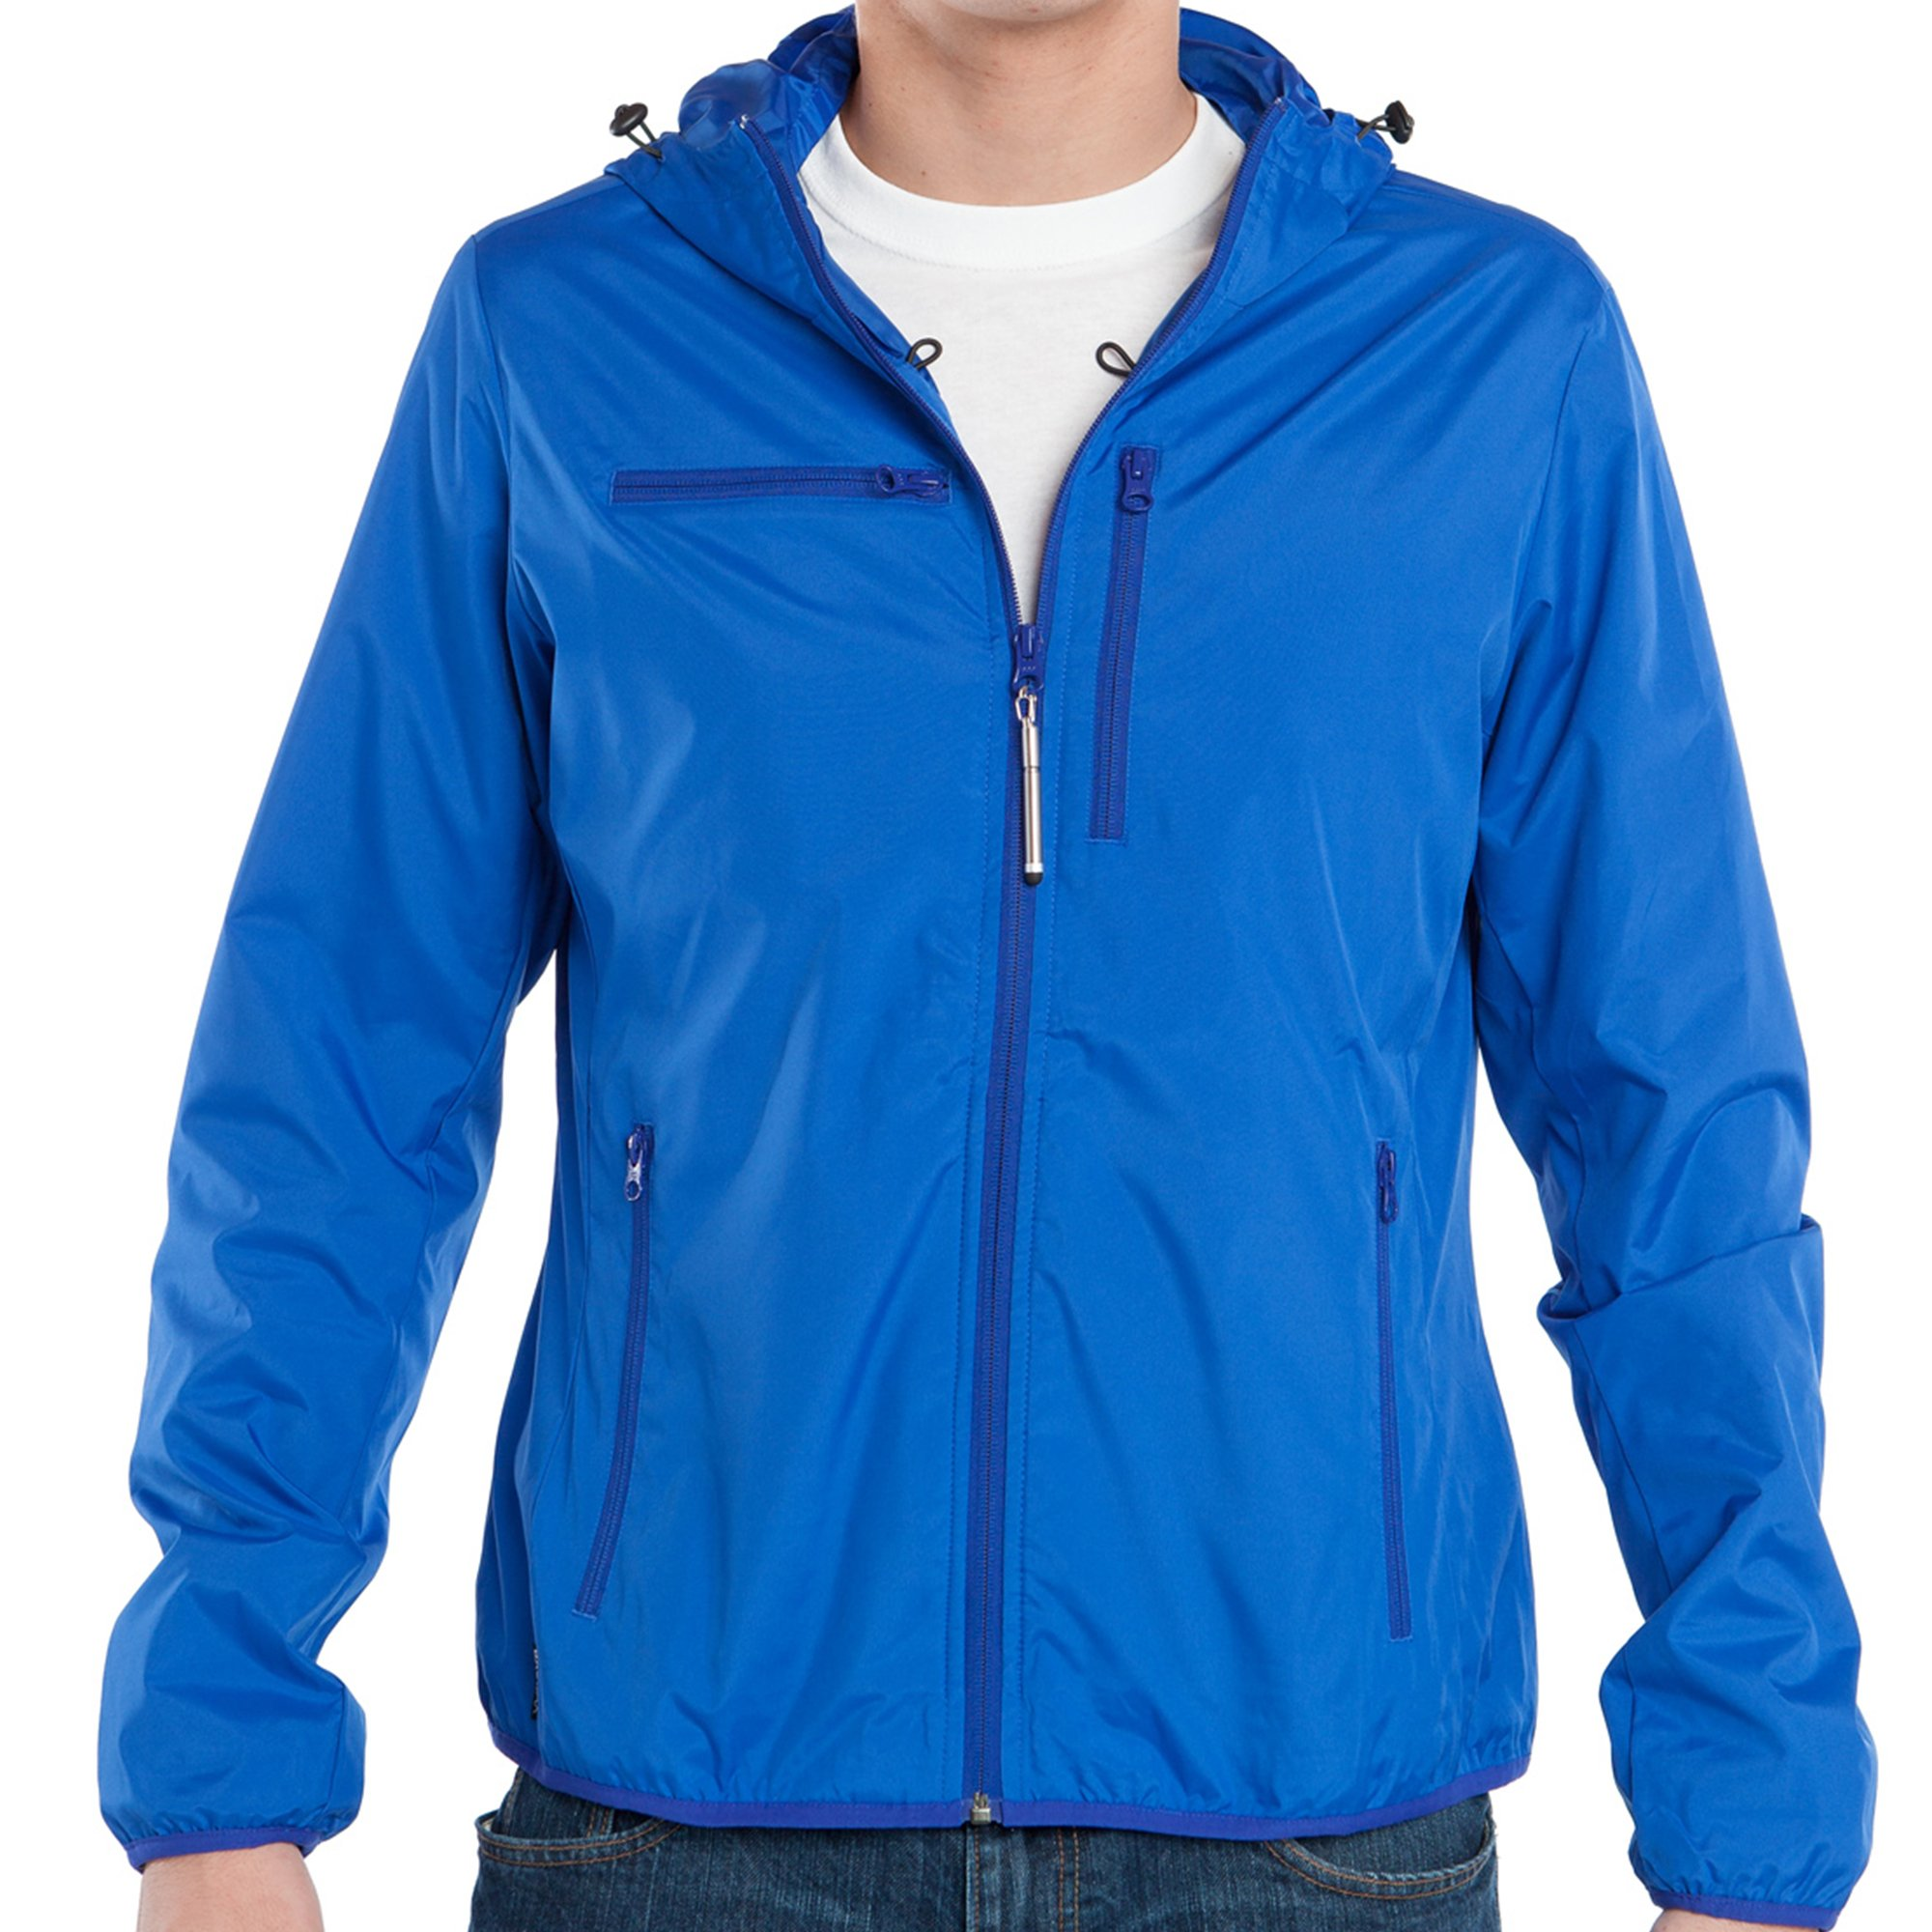 Baubax Travel Jacket - Windbreaker - Male - Blue - Small